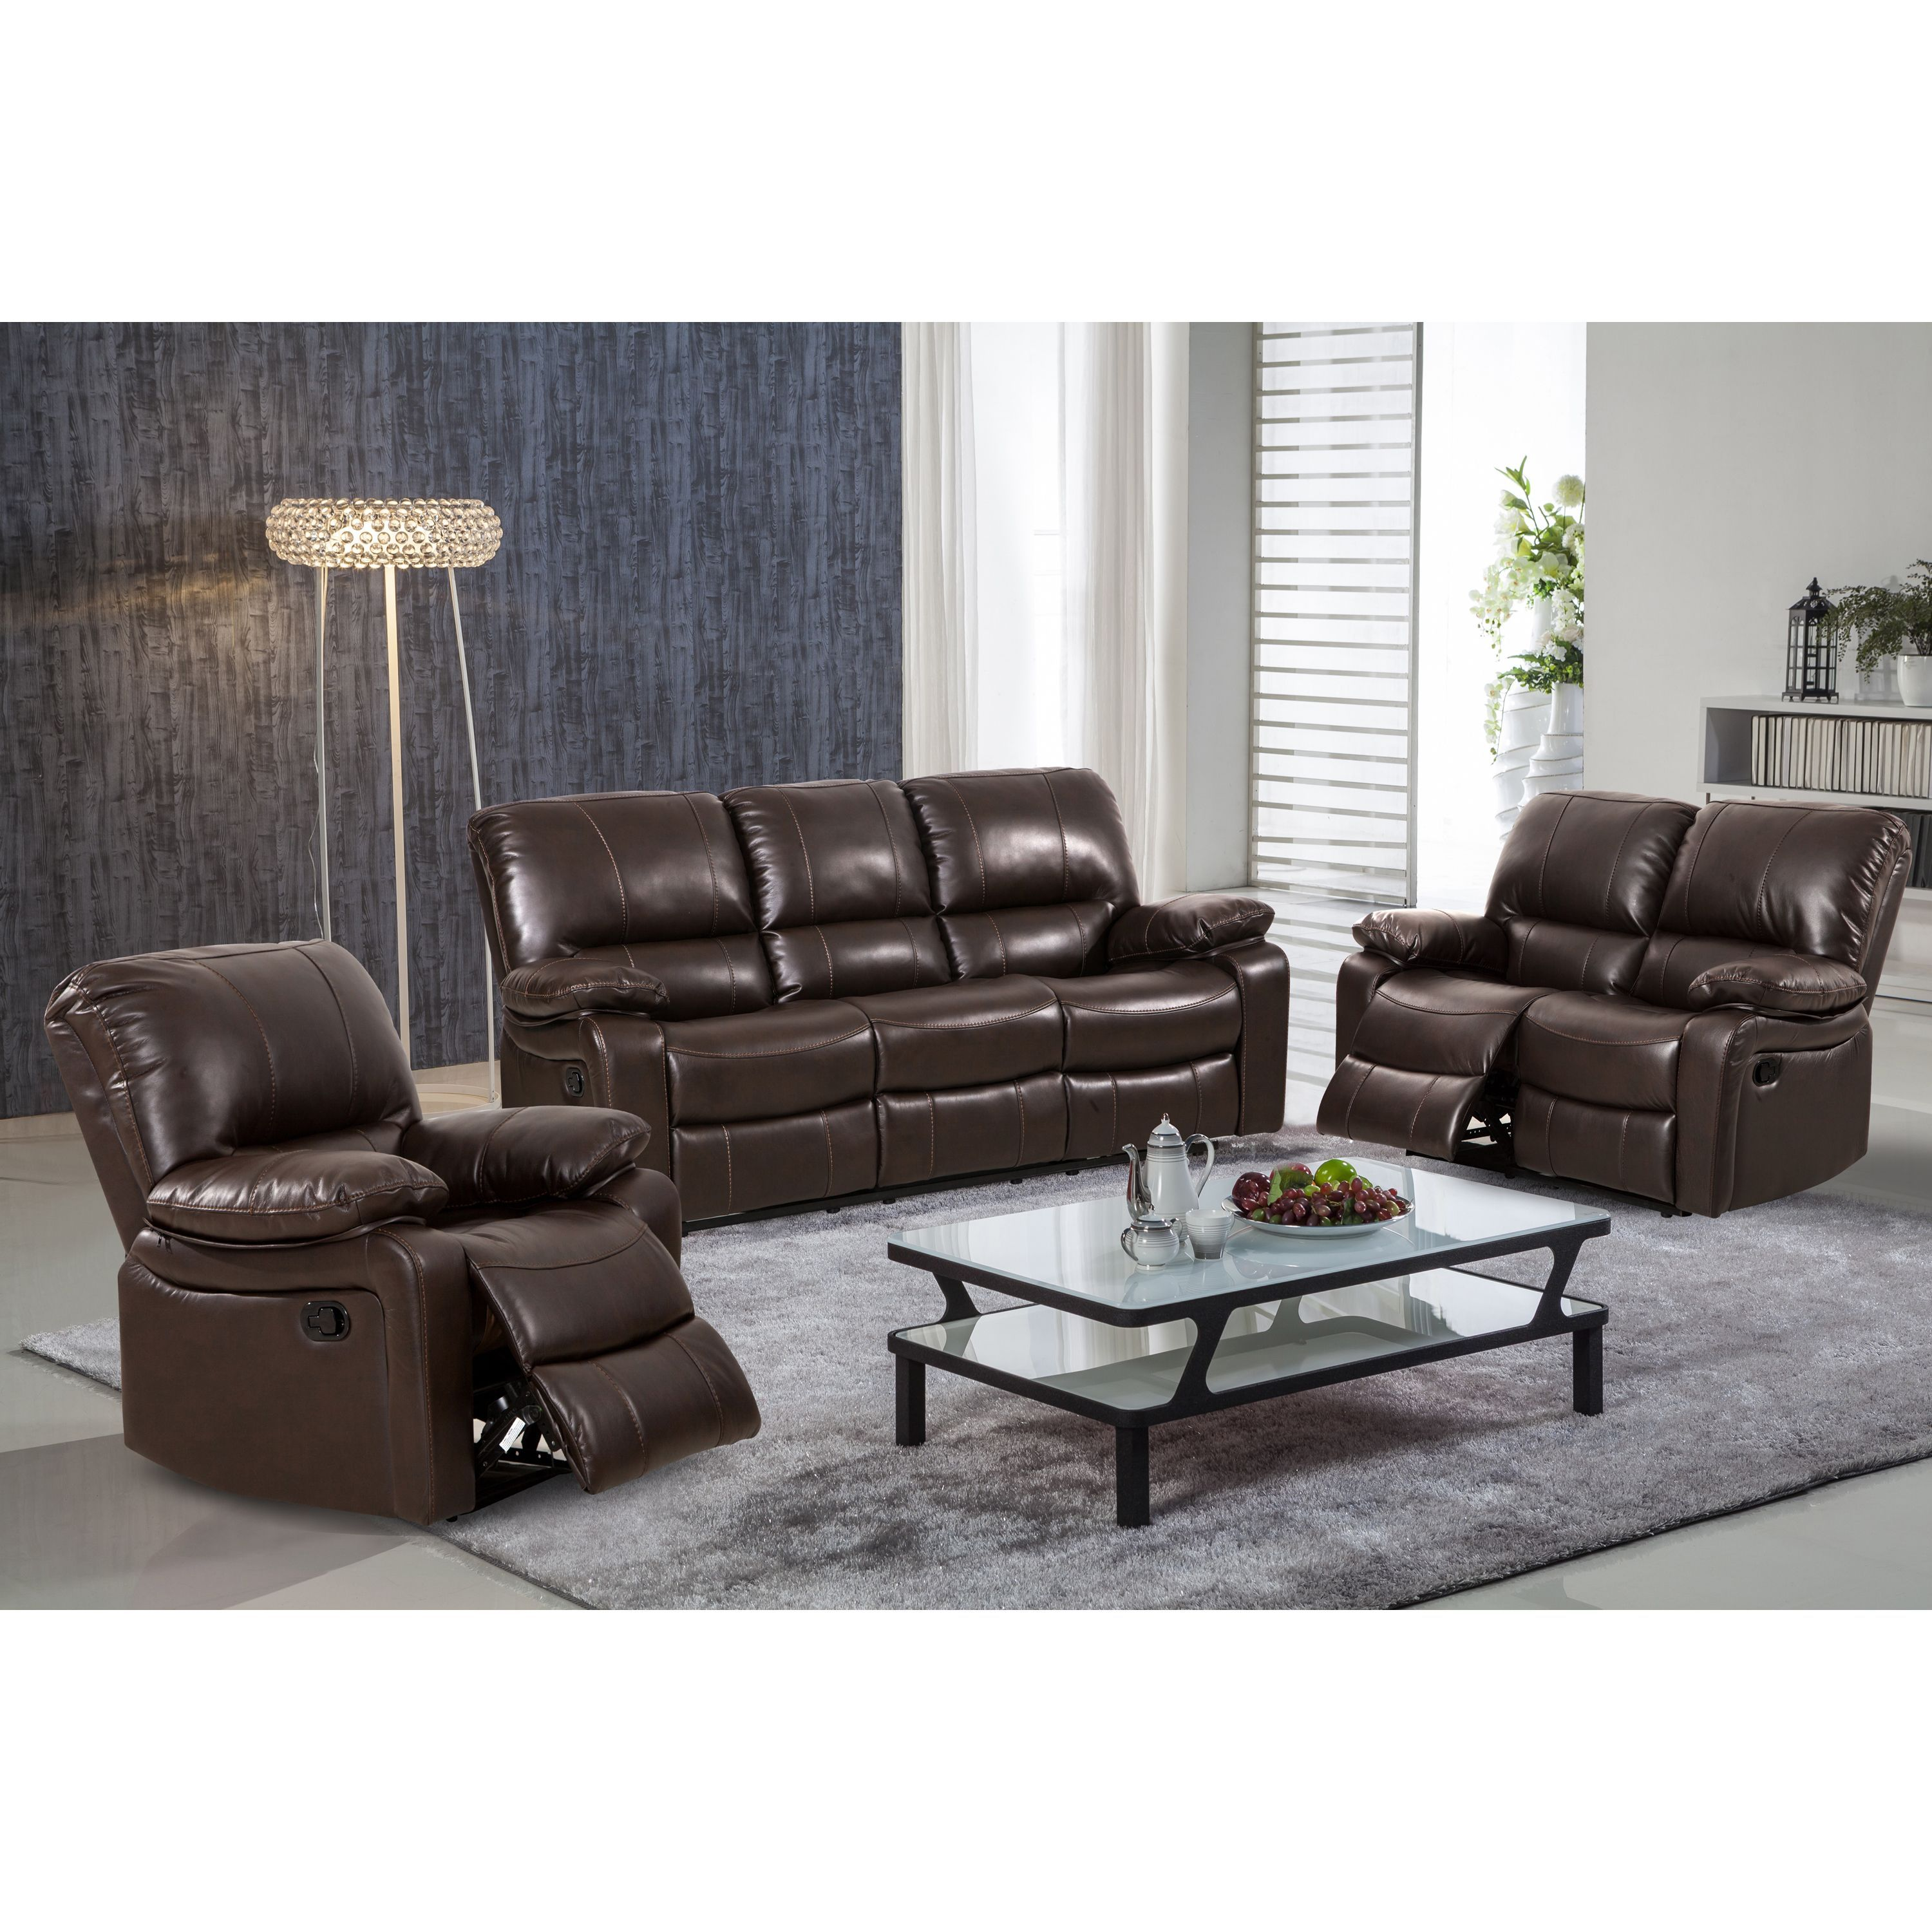 swing chair homestore how much does it cost to recover a samantha leather gel 3 piece reclining sofa set with